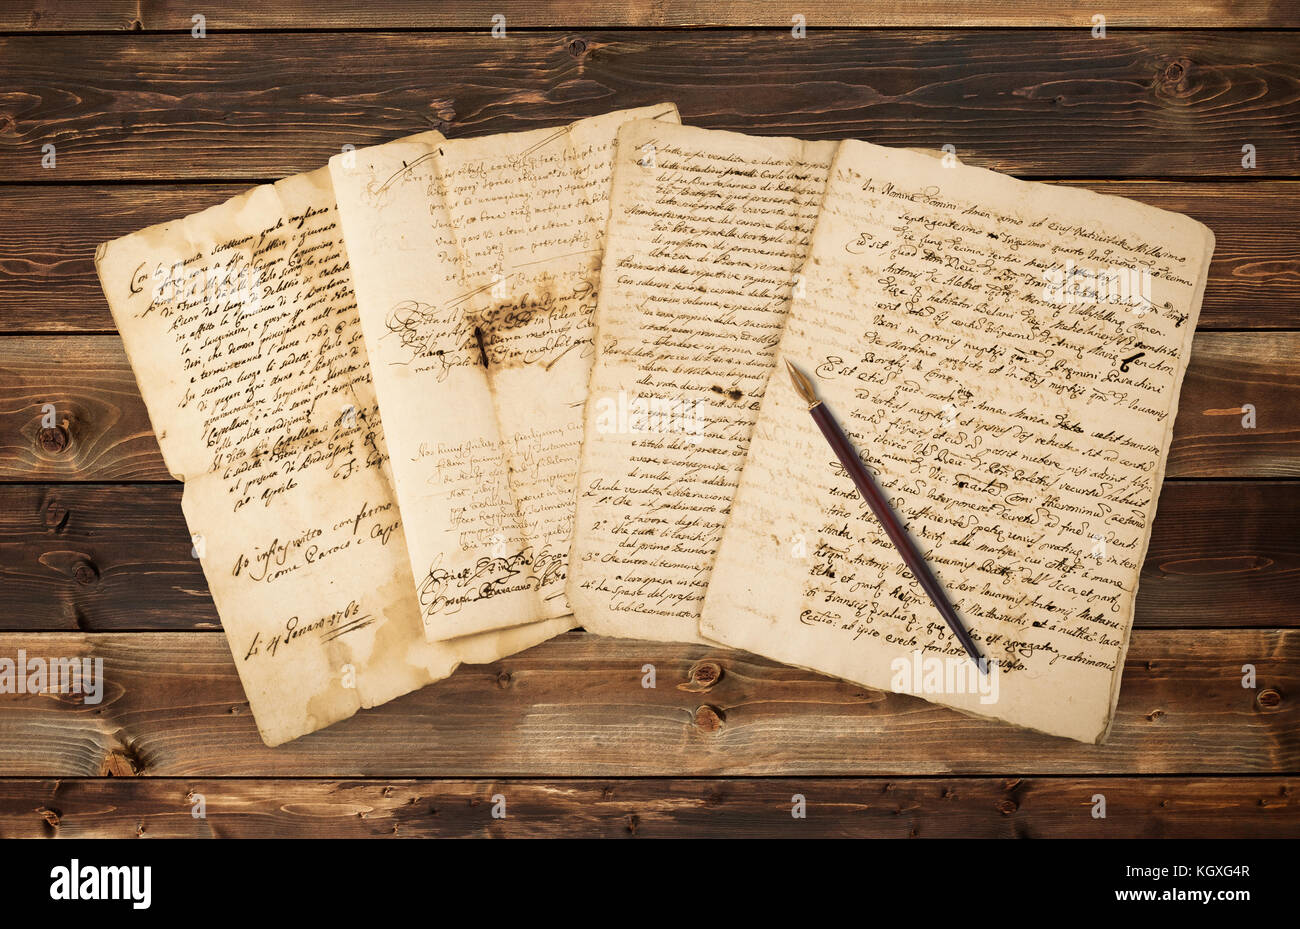 Pile of old vintage manuscripts with nib - Stock Image